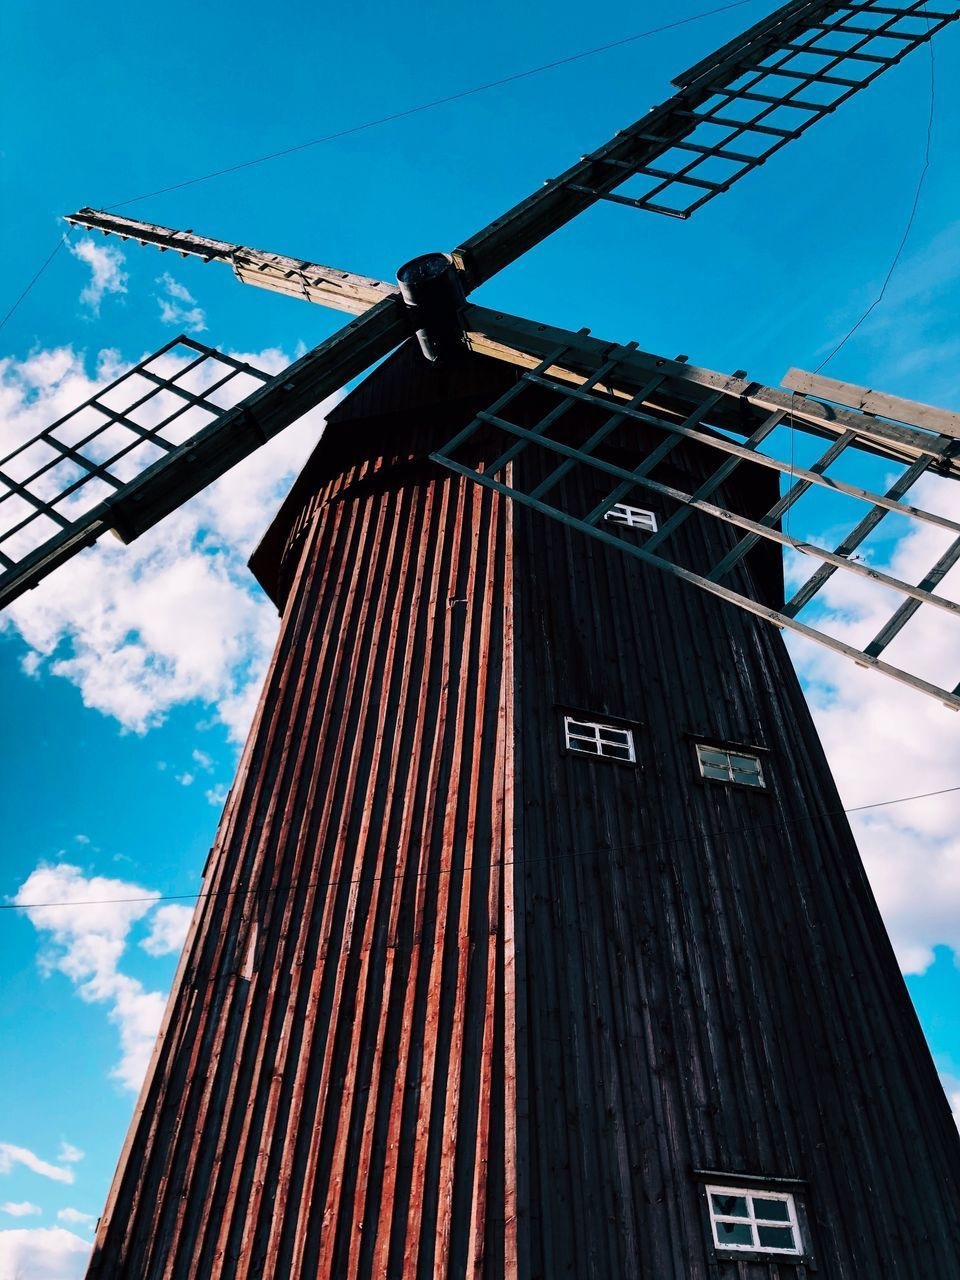 low angle view, architecture, built structure, sky, fuel and power generation, renewable energy, alternative energy, environmental conservation, cloud - sky, building exterior, nature, no people, day, wind turbine, turbine, wind power, building, traditional windmill, environment, outdoors, power supply